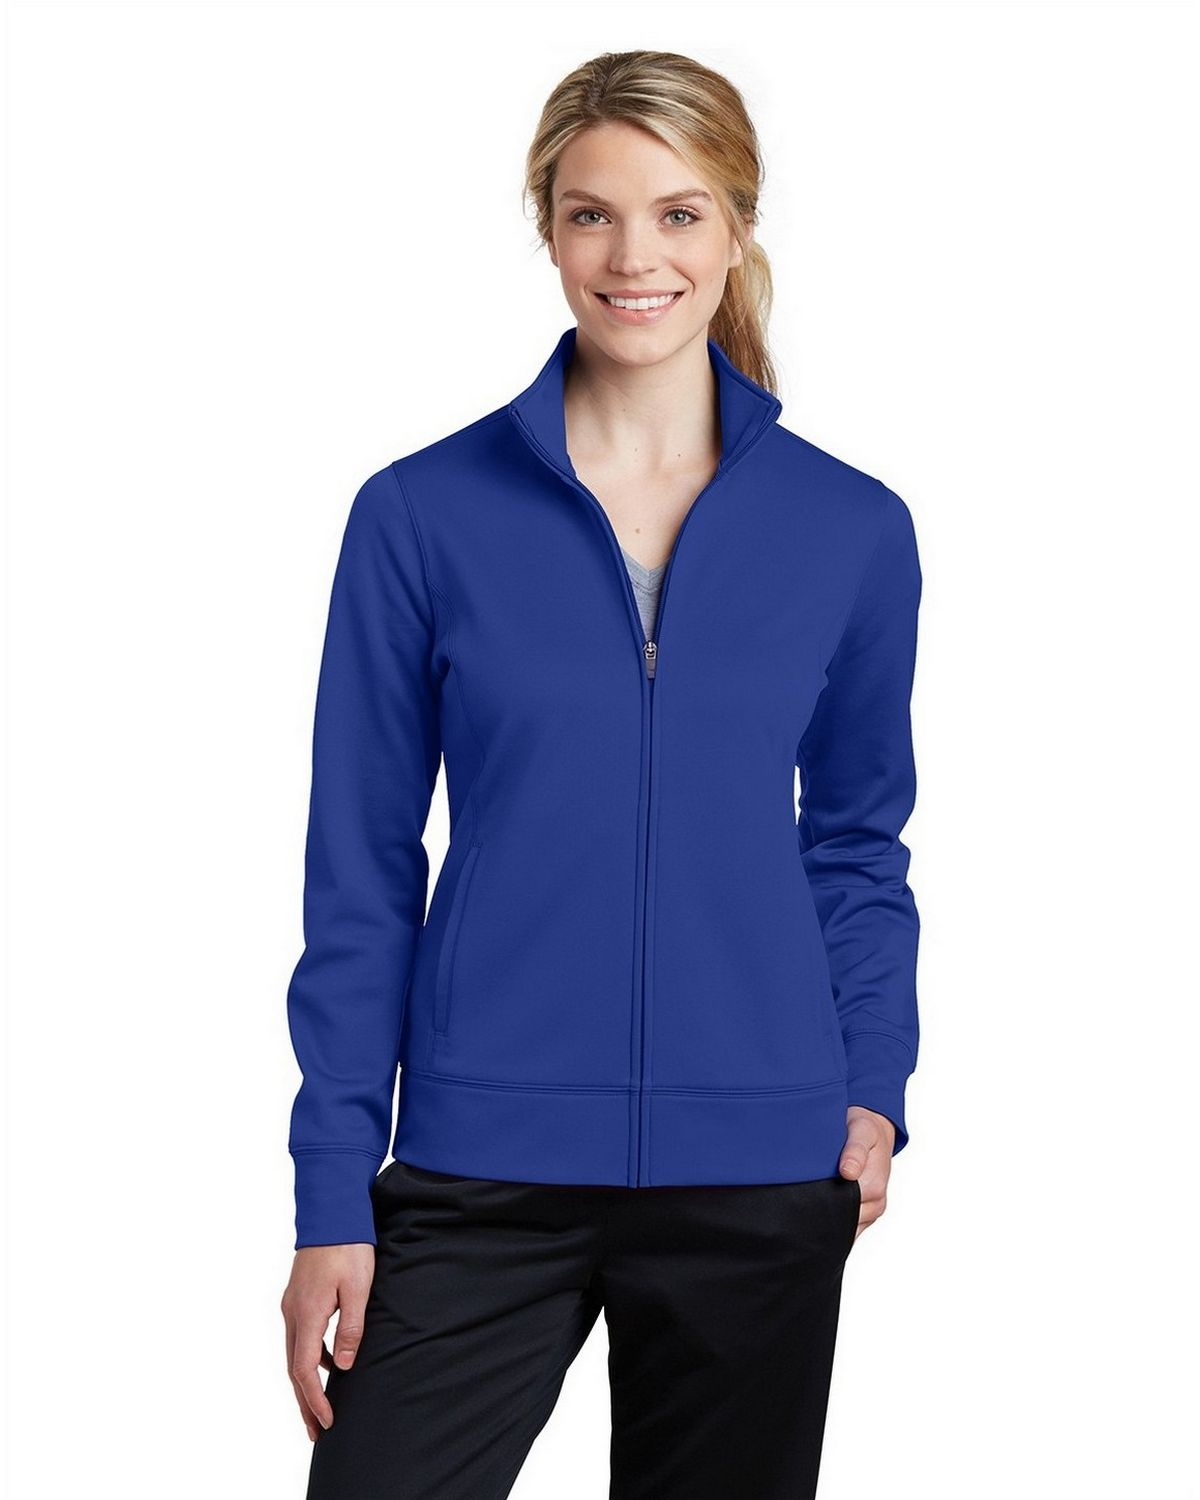 Sport-Tek LST241 Ladies Full-Zip Jacket - True Royal - XXL LST241